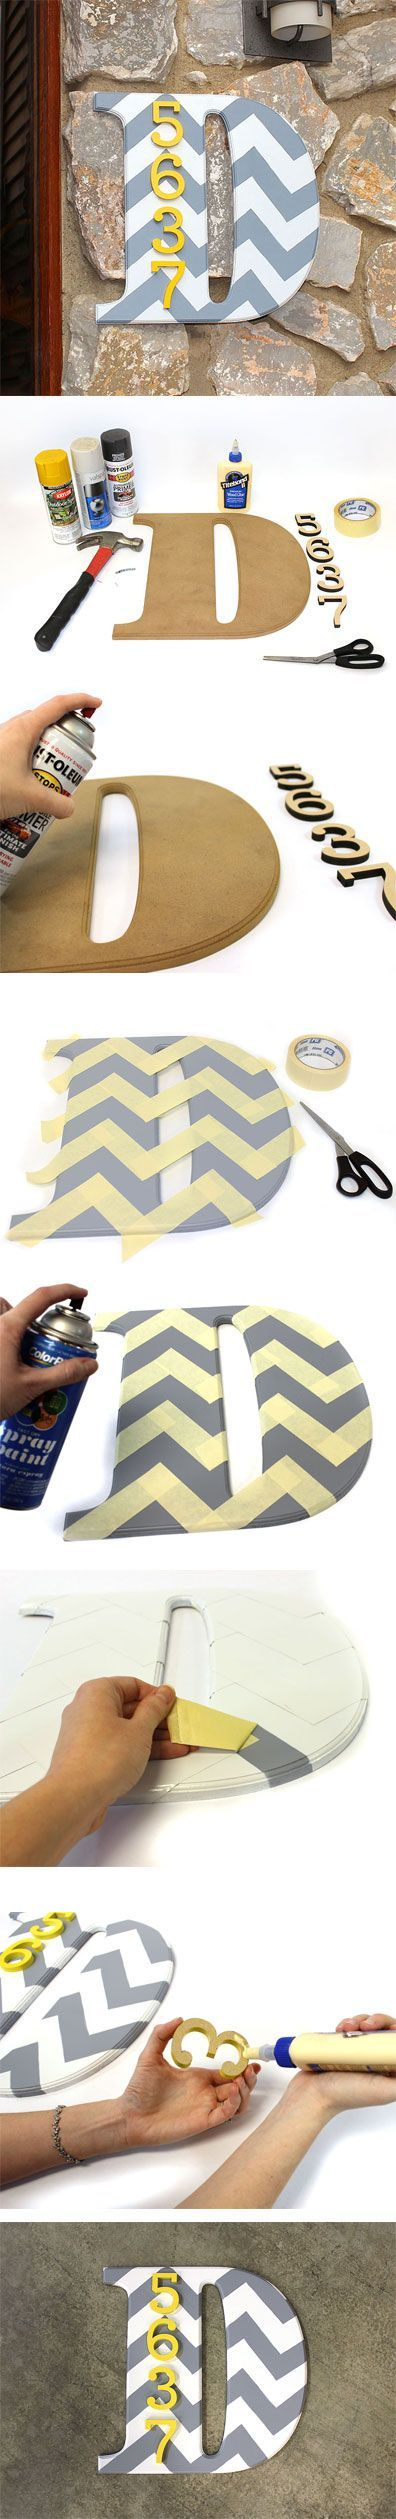 Pin by corrie burke on everyday crafts pinterest chevron letter